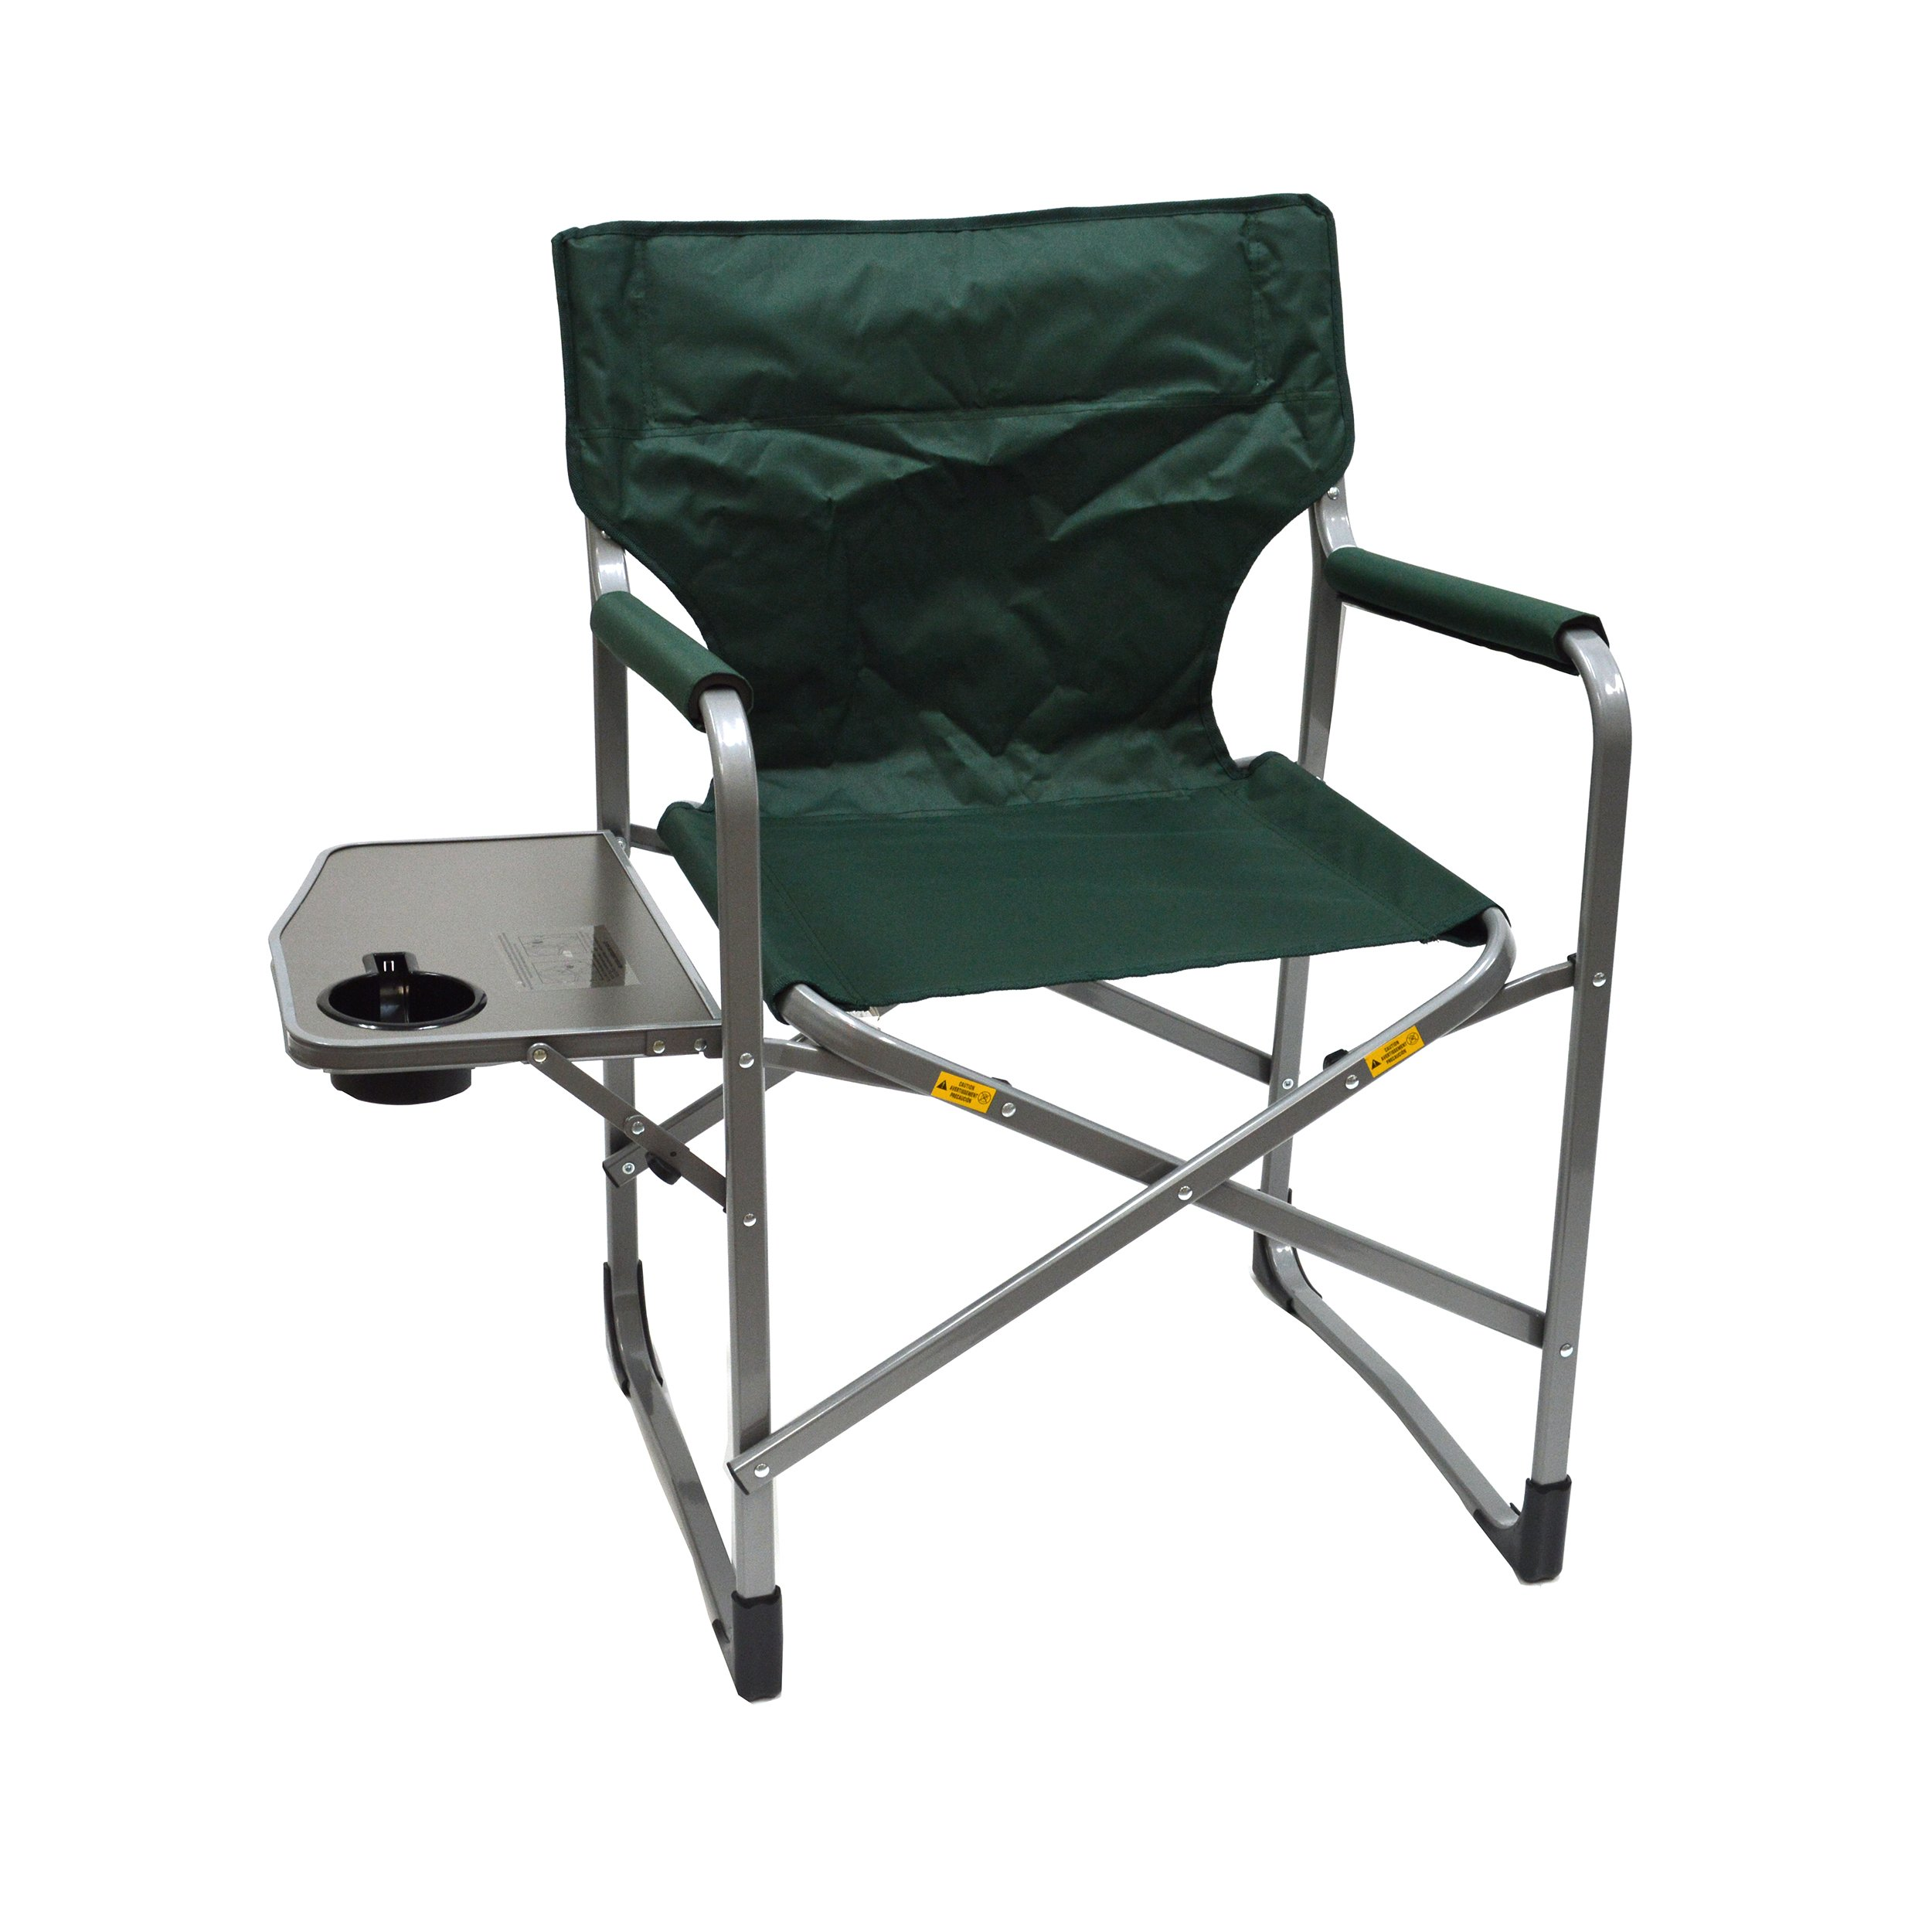 MAC S P O R T S  Deluxe Director's Chair with Side Table (Green)